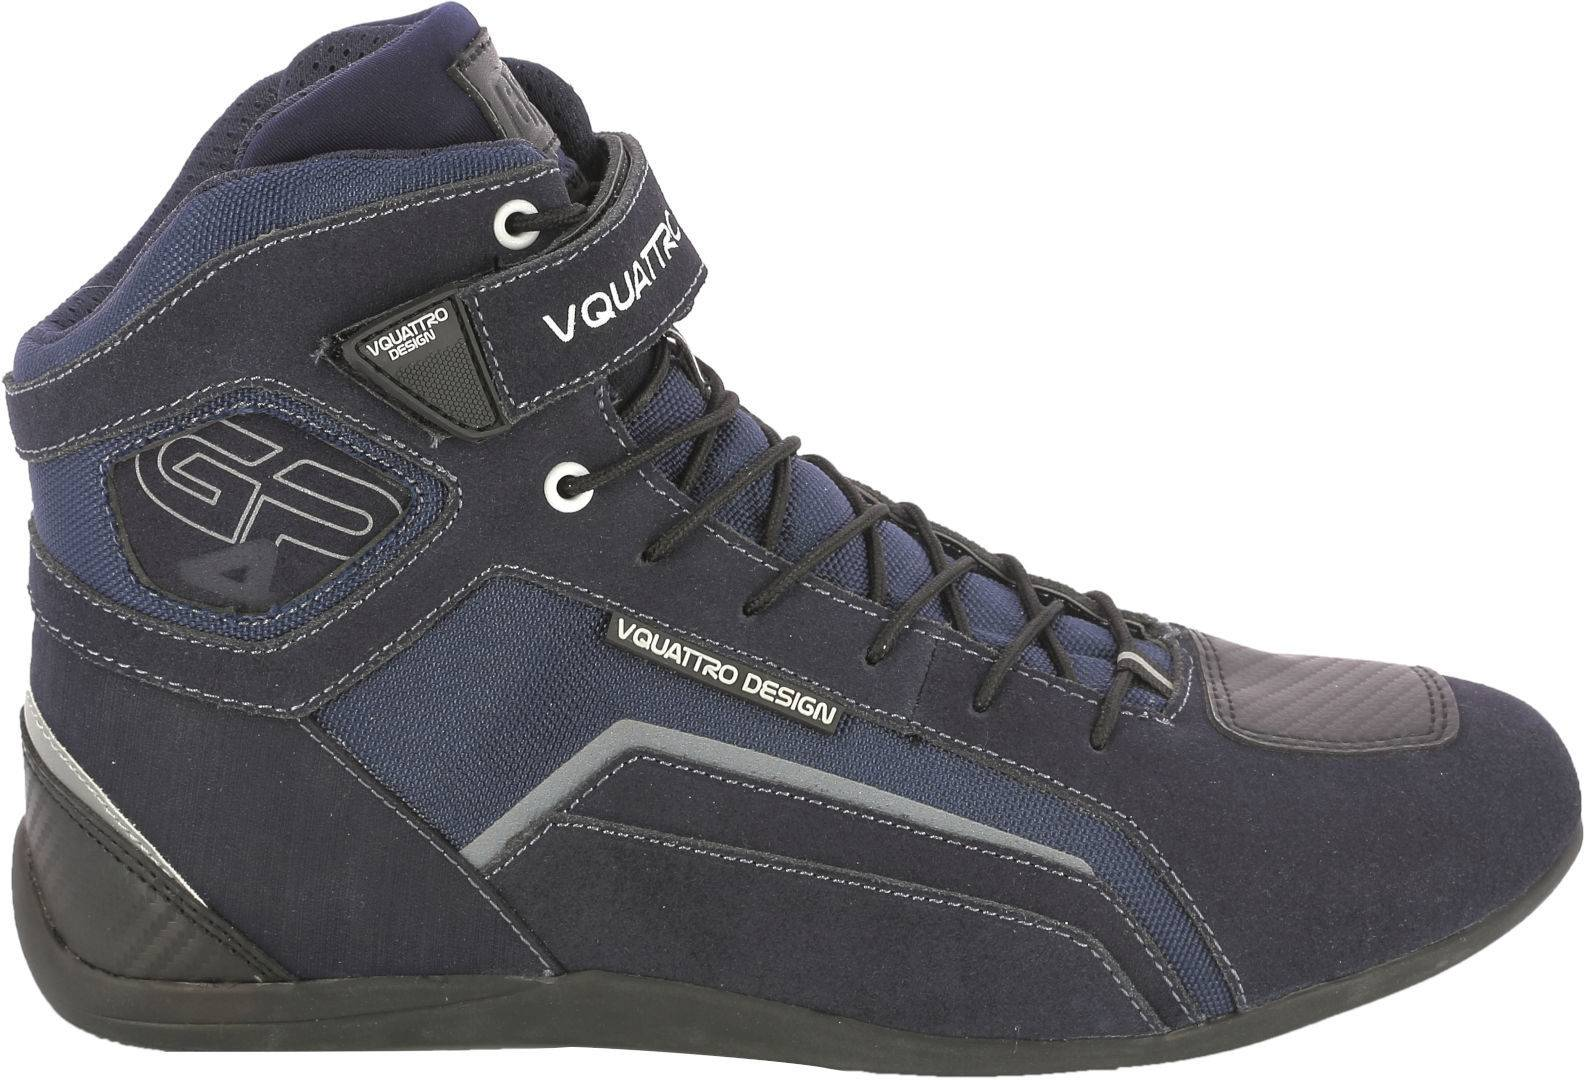 VQuattro GP4 19 Motorcycle Shoes  - Size: 40